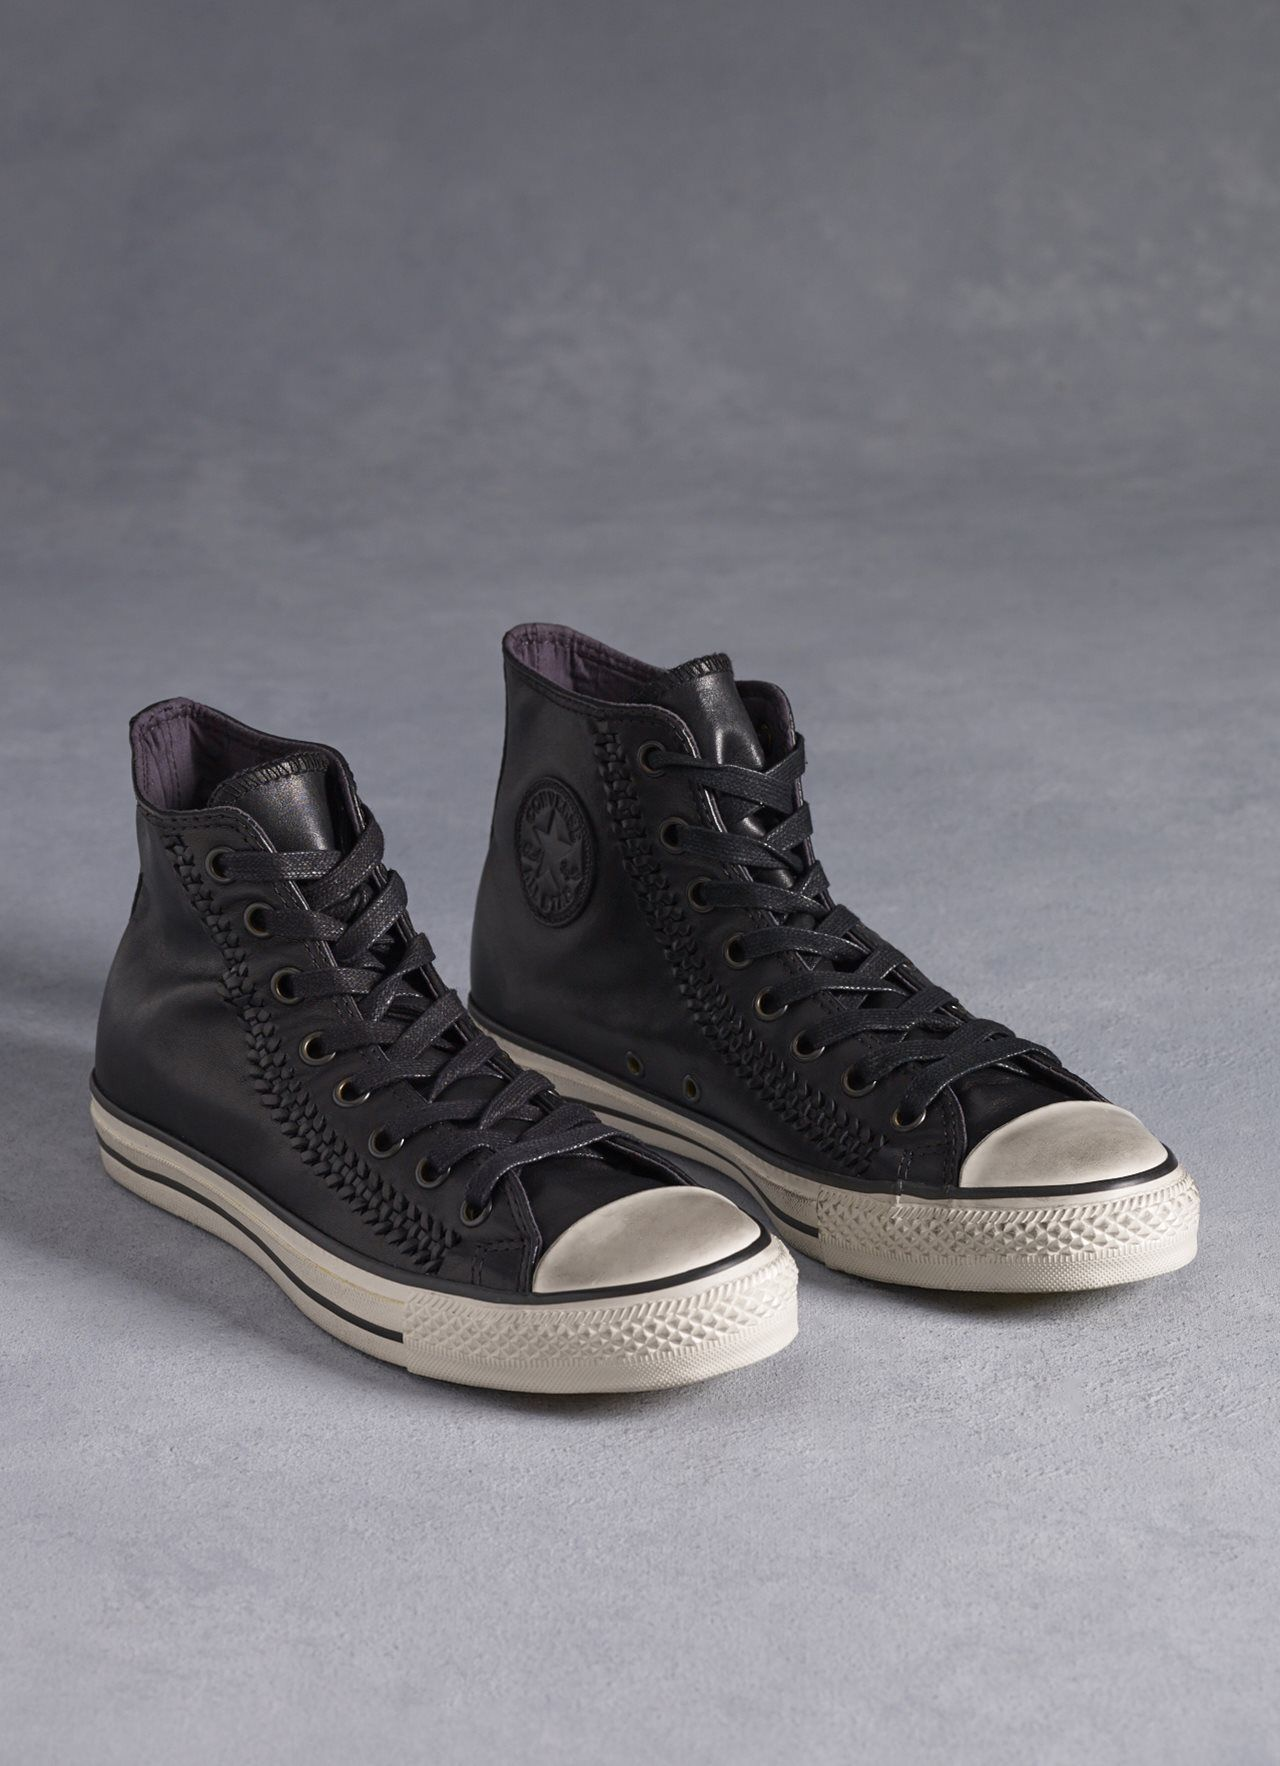 e24ebeaf574698 Converse X John Varvatos  The handmade quality of our woven leather  construction makes this Chuck Taylor All Star one-of-a-kind interpretation  of a true ...